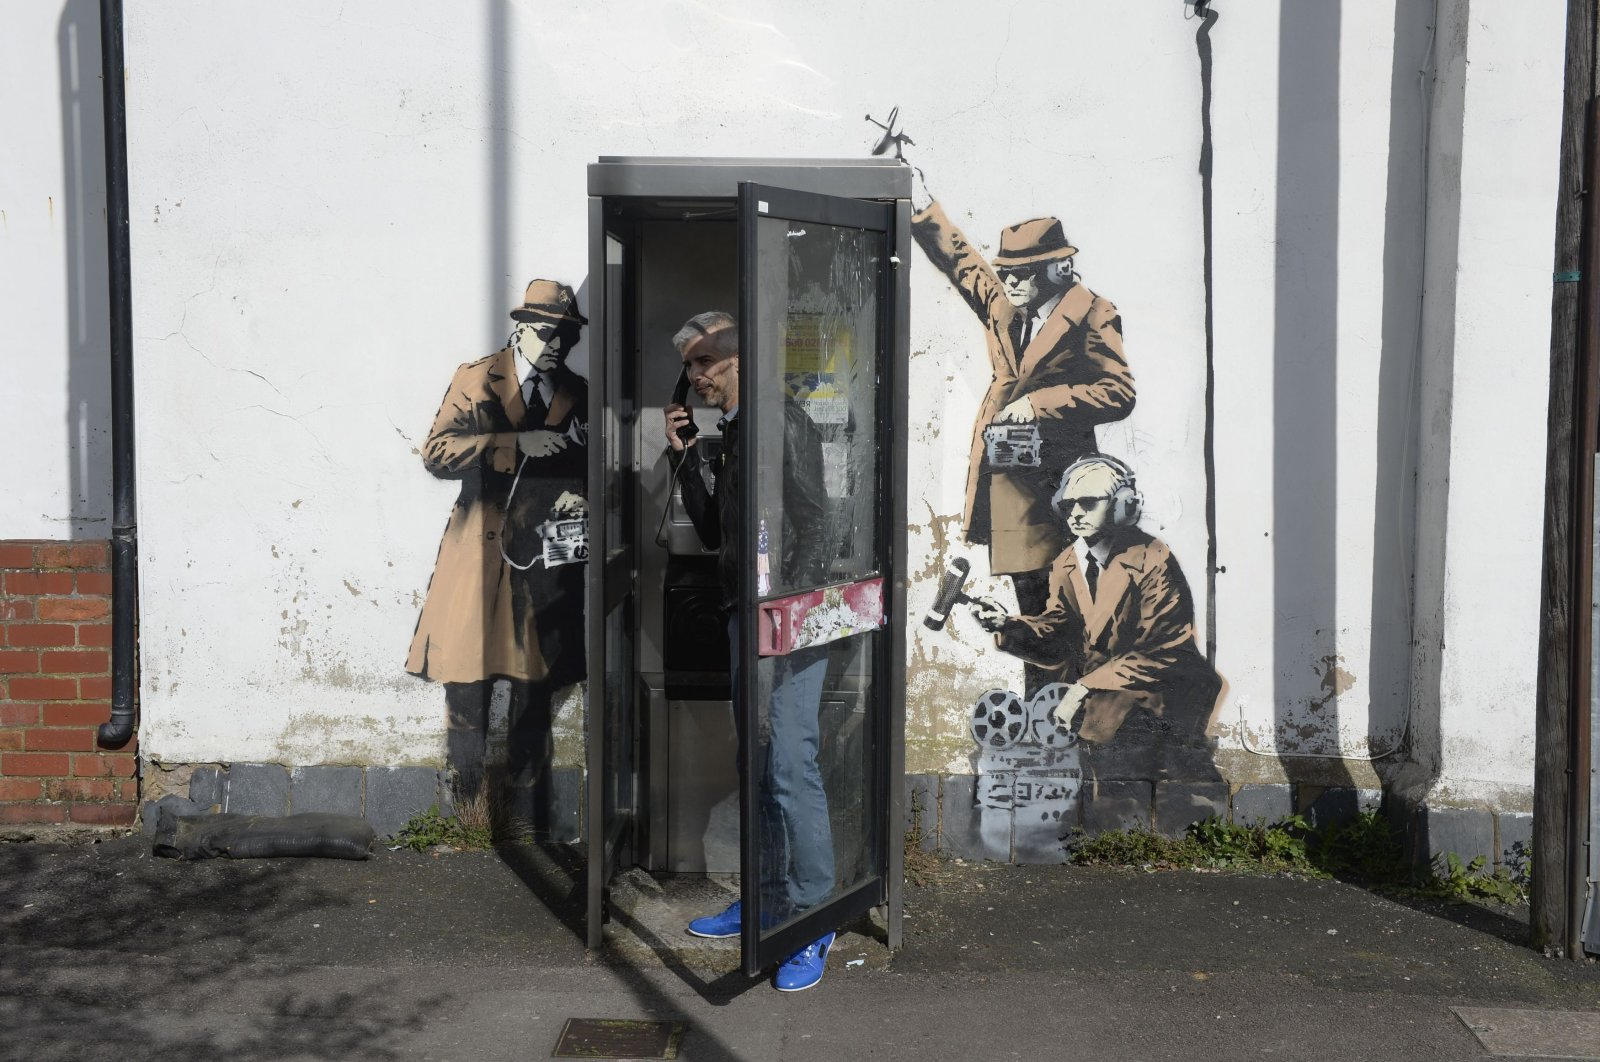 In this file photo, a new graffiti street art piece, suspected of being a Banksy, appears in Cheltenham, England, April 14, 2014. (AP Photo)